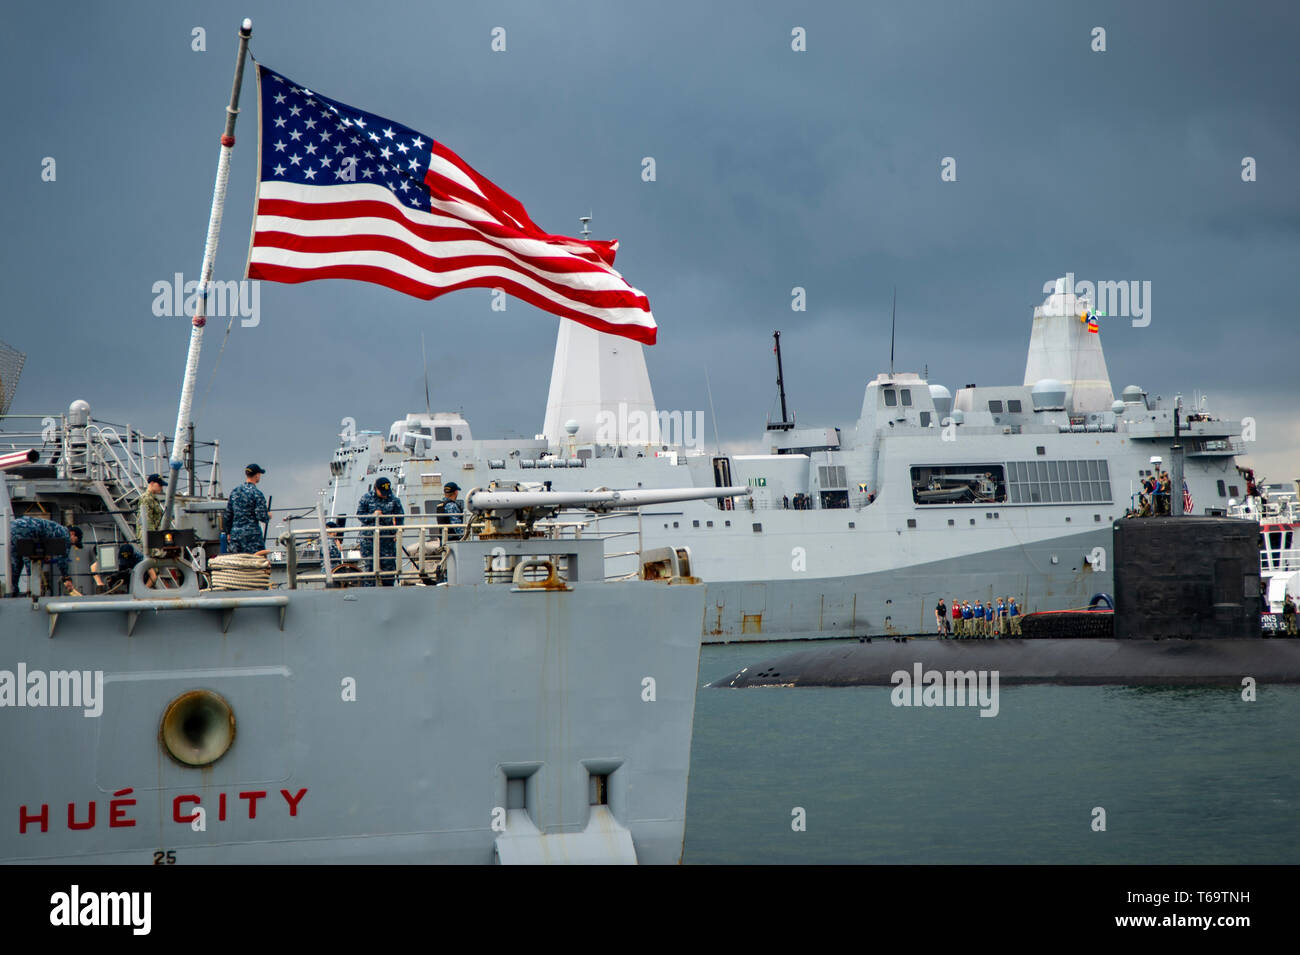 4b401f05a66773 Uss Albany Stock Photos & Uss Albany Stock Images - Alamy